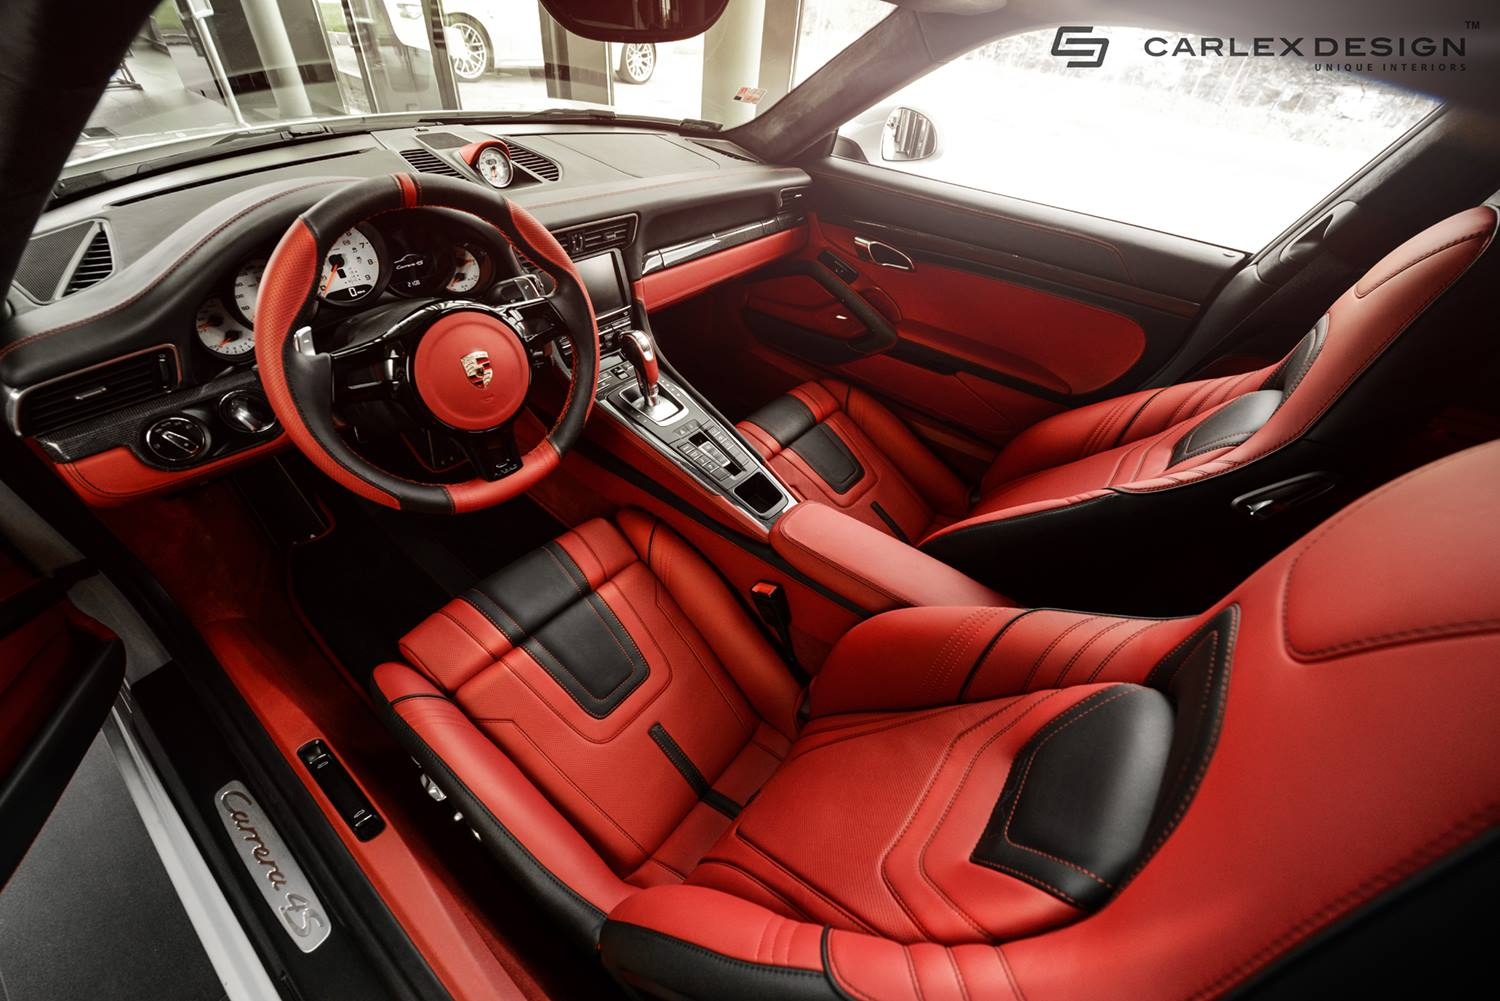 carlex customizes a porsche 911 looks christmas themed autoevolution. Black Bedroom Furniture Sets. Home Design Ideas